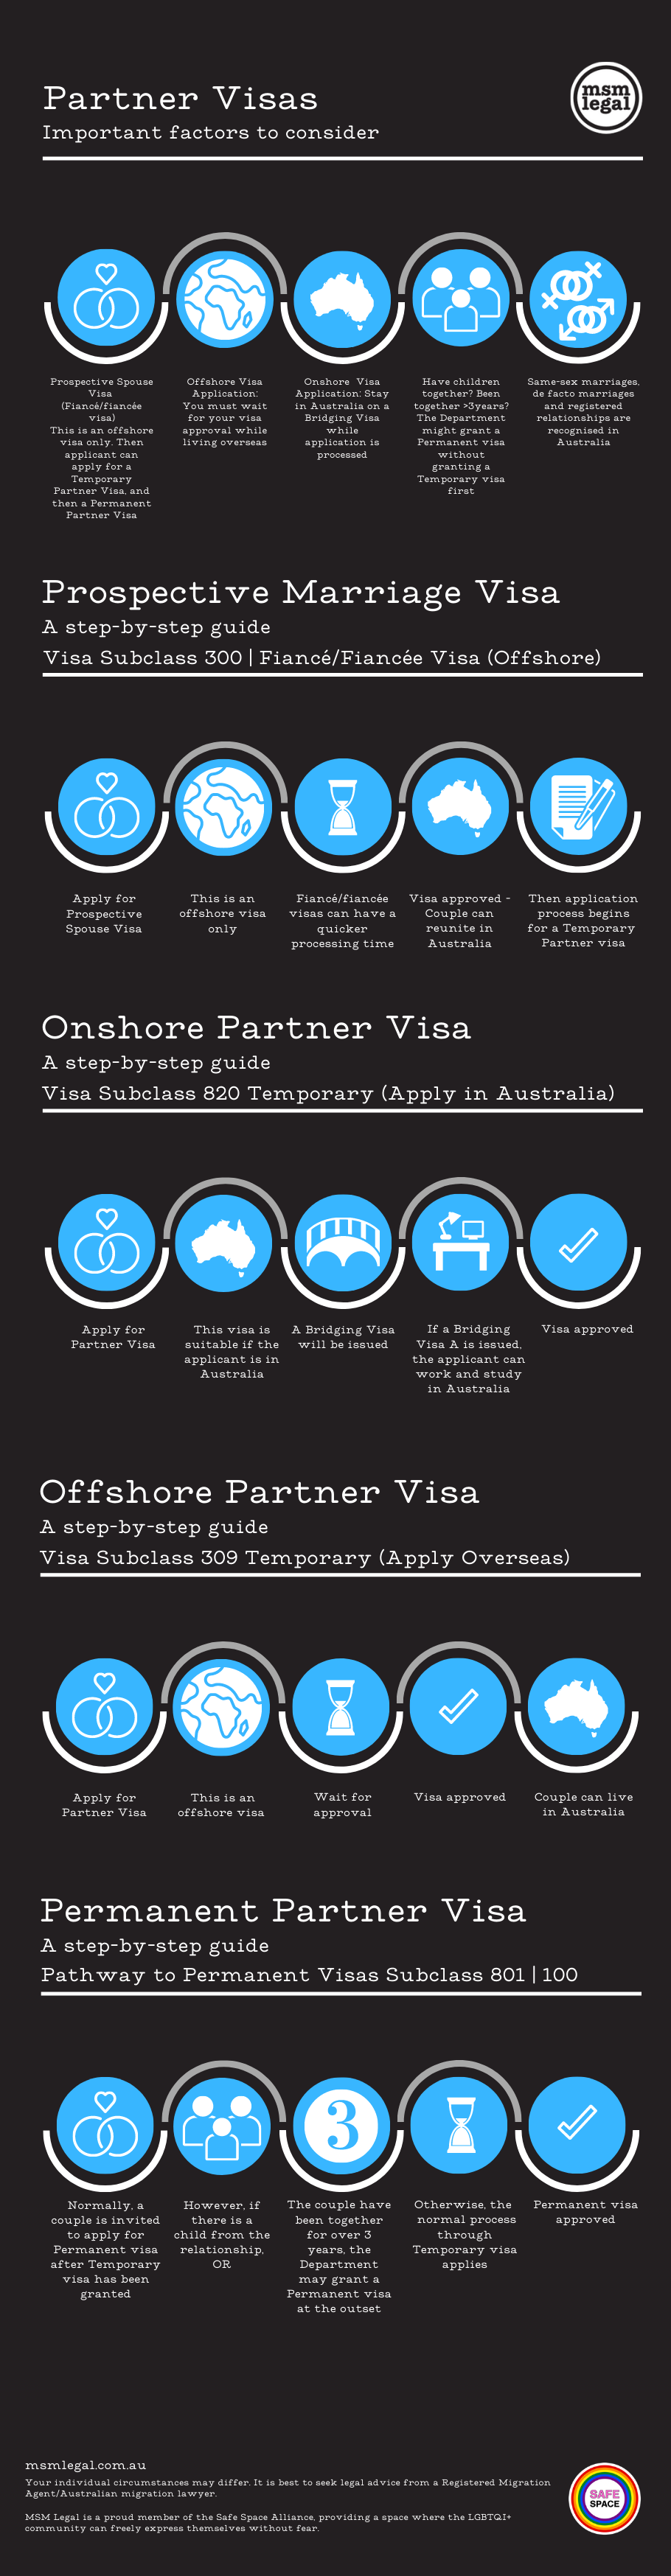 An infographic detailing the process of applying for an Australian Partner Visa